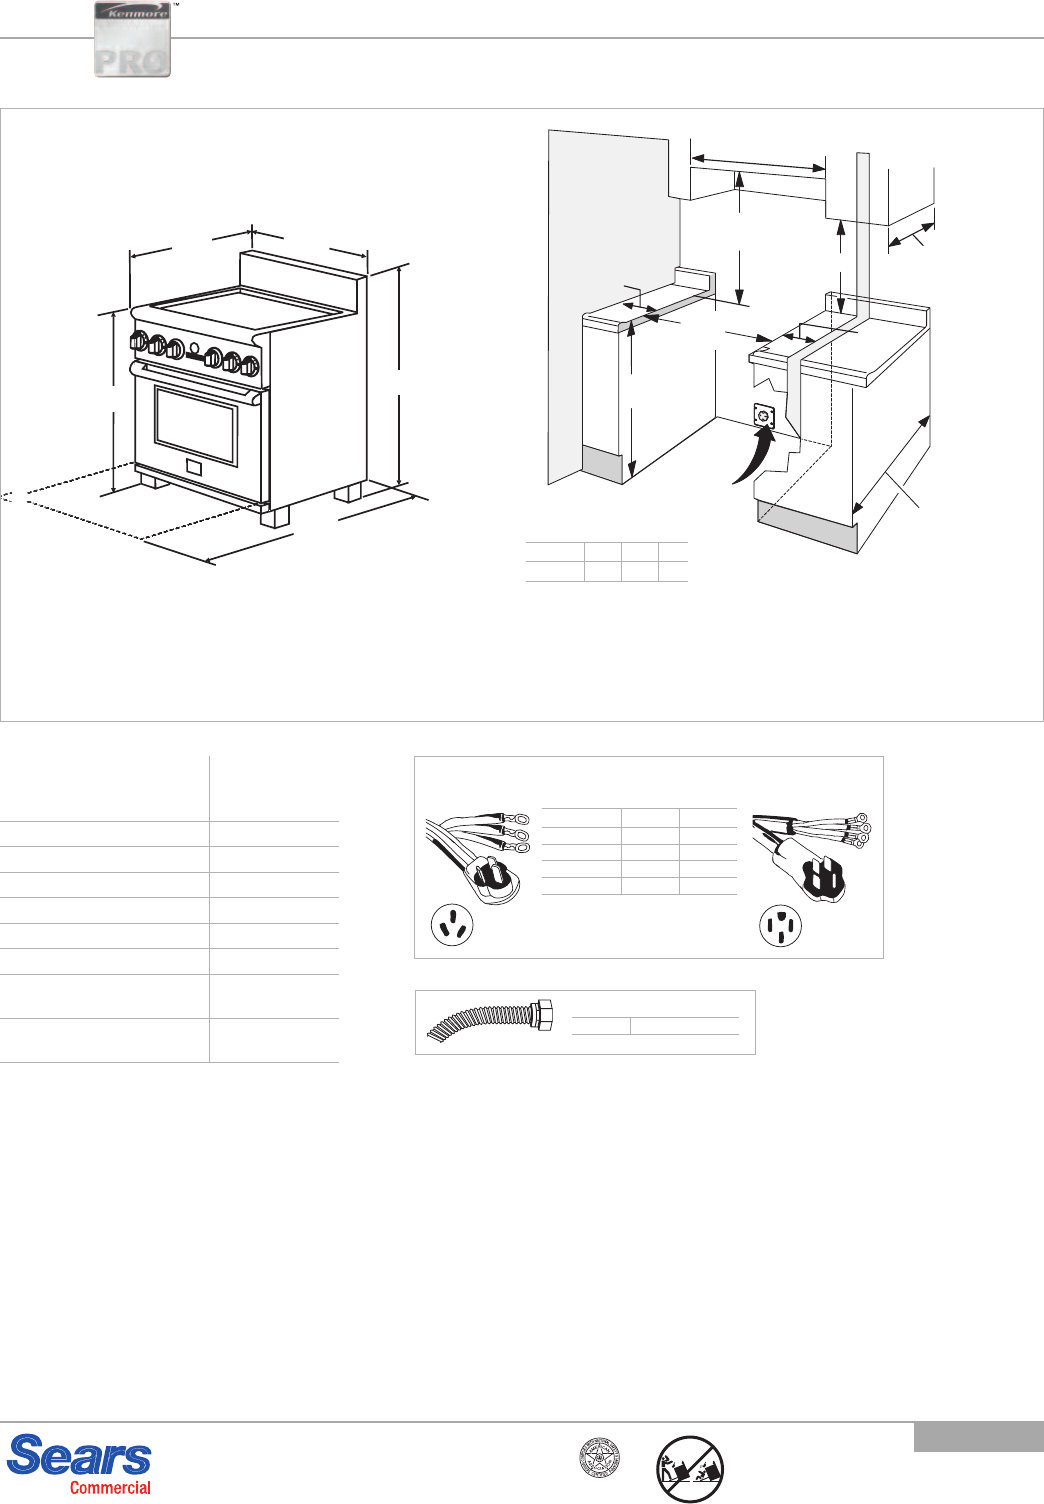 Kenmore Pro 30 Warming Drawer Installation Guide 22 79523